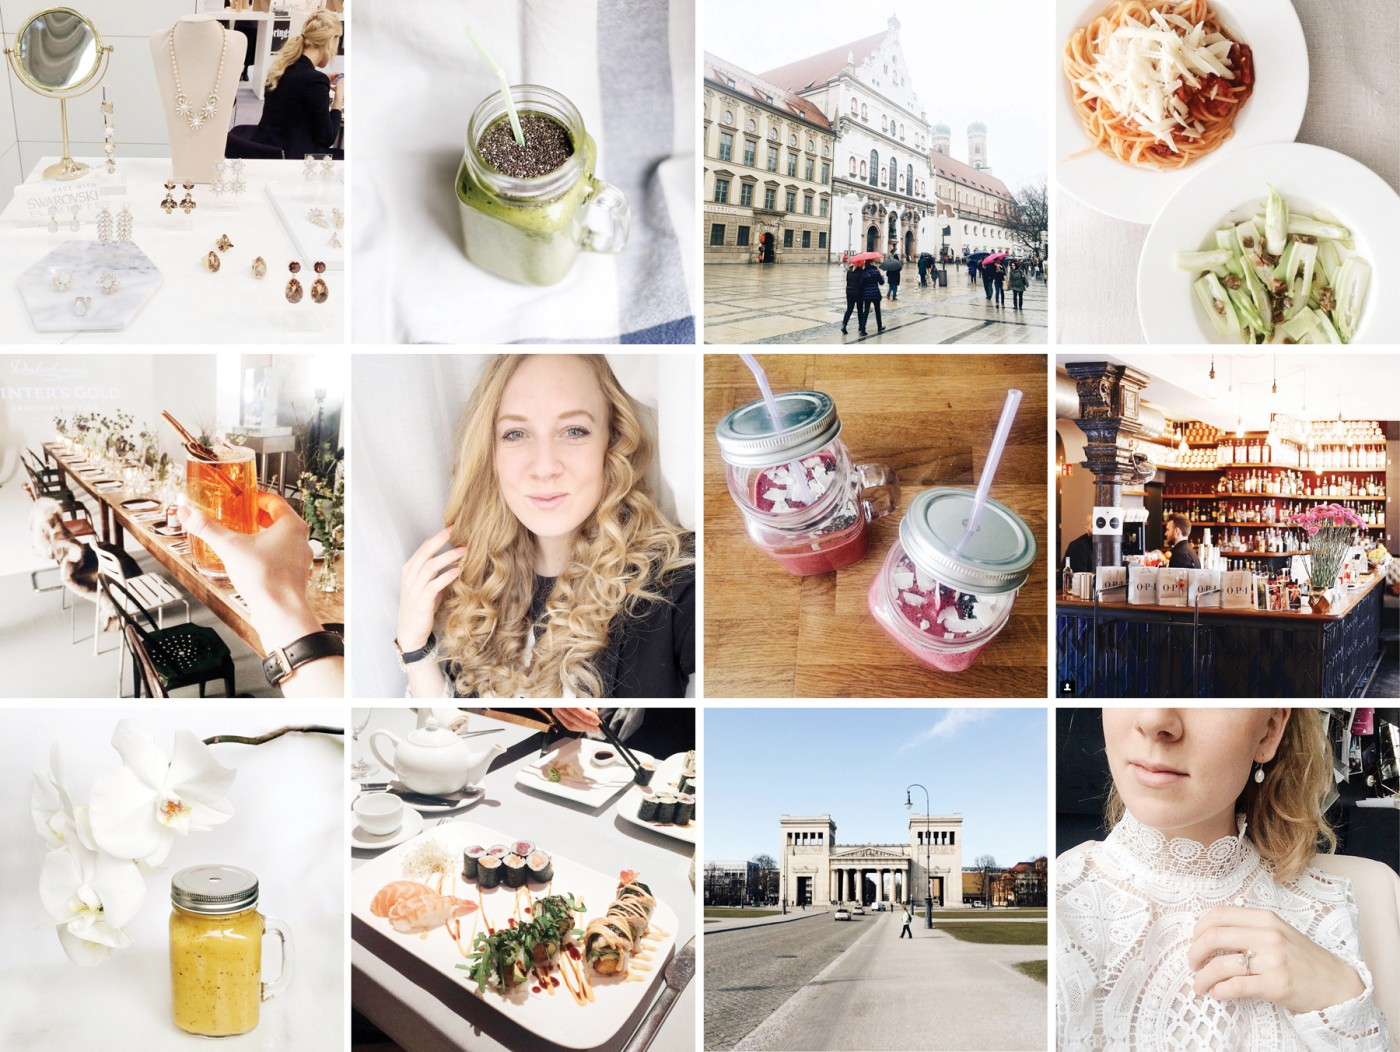 monthly favorites, Life on my phone | München Modeblog, German Fashion Blog, Fashionblogger, new trends